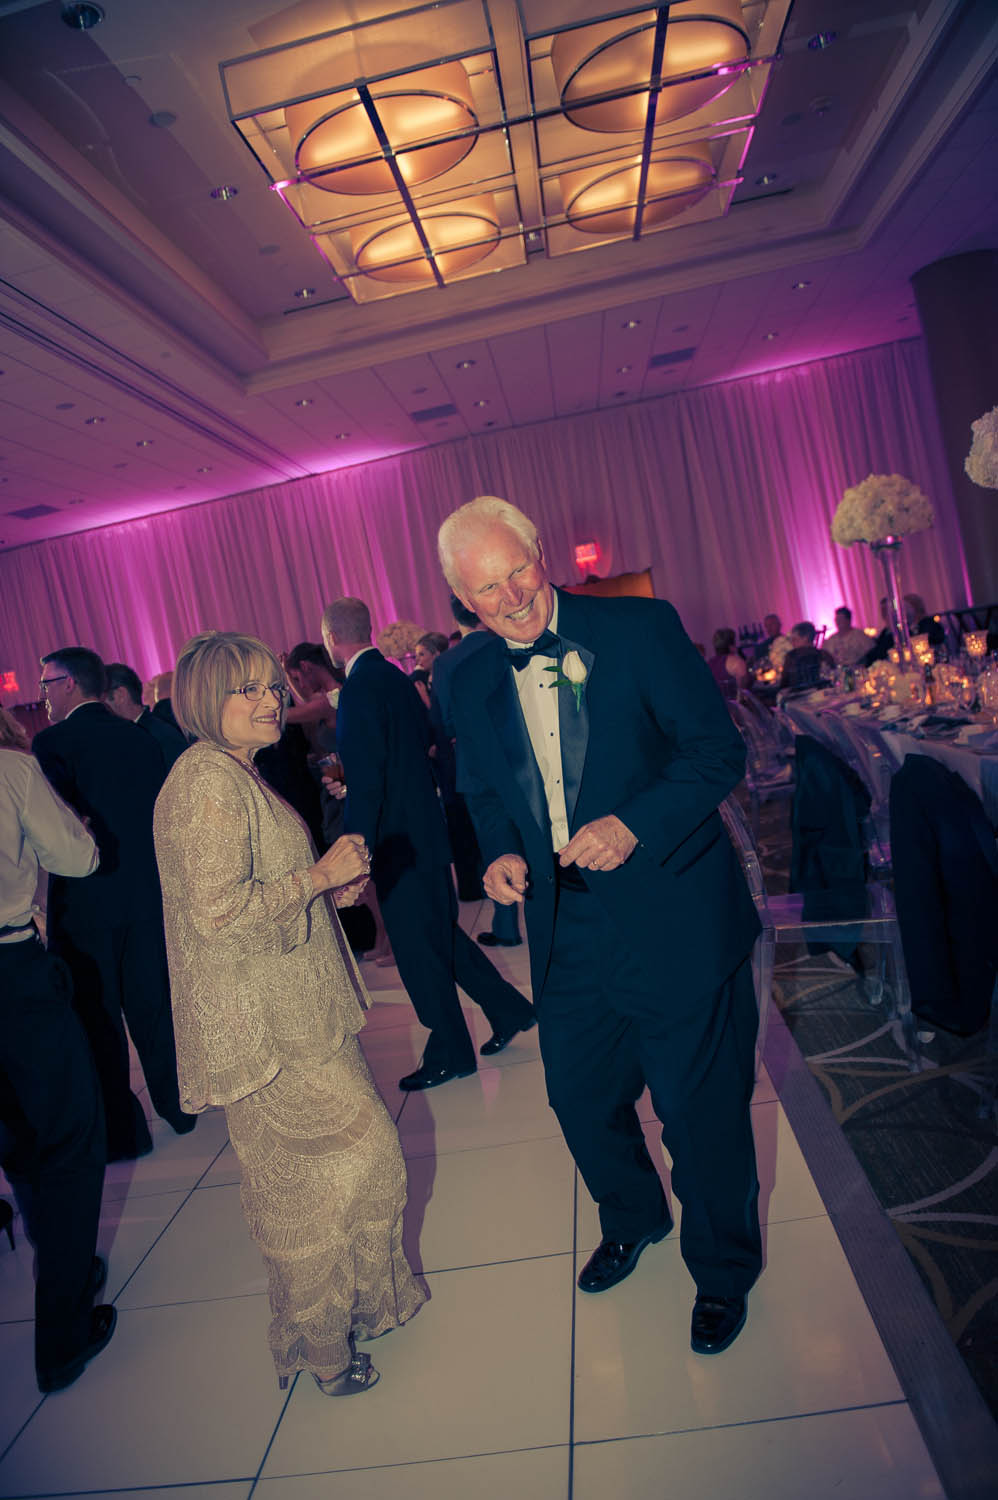 westin cincinnati wedding day-139.jpg